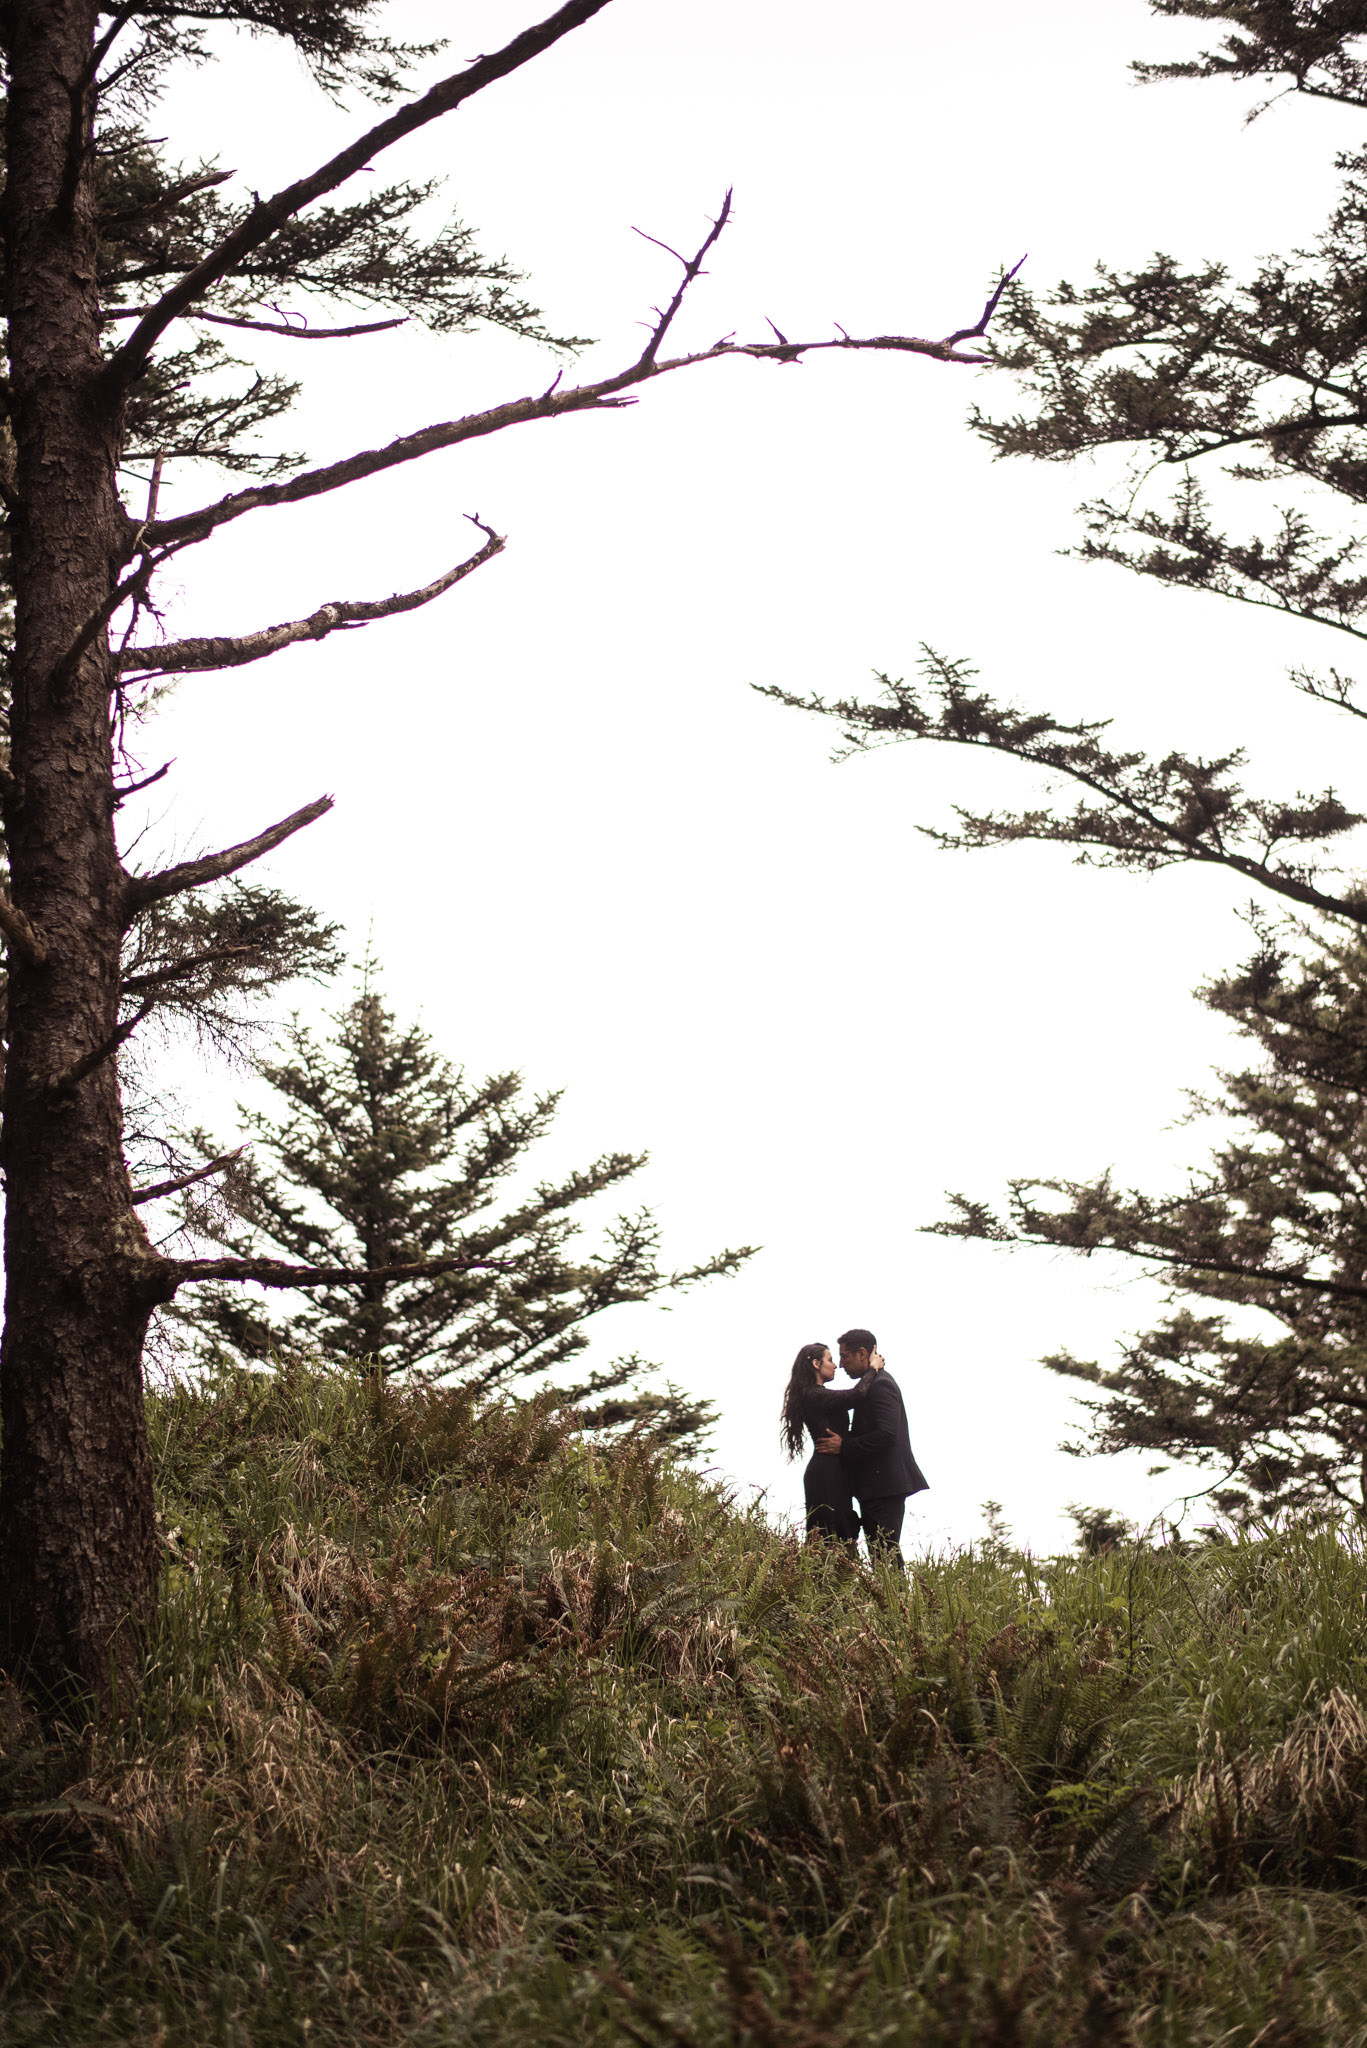 oregon-cannon-beach-ecola-park-adventure-destination-houston-engagement-photographer-sm-27.jpg